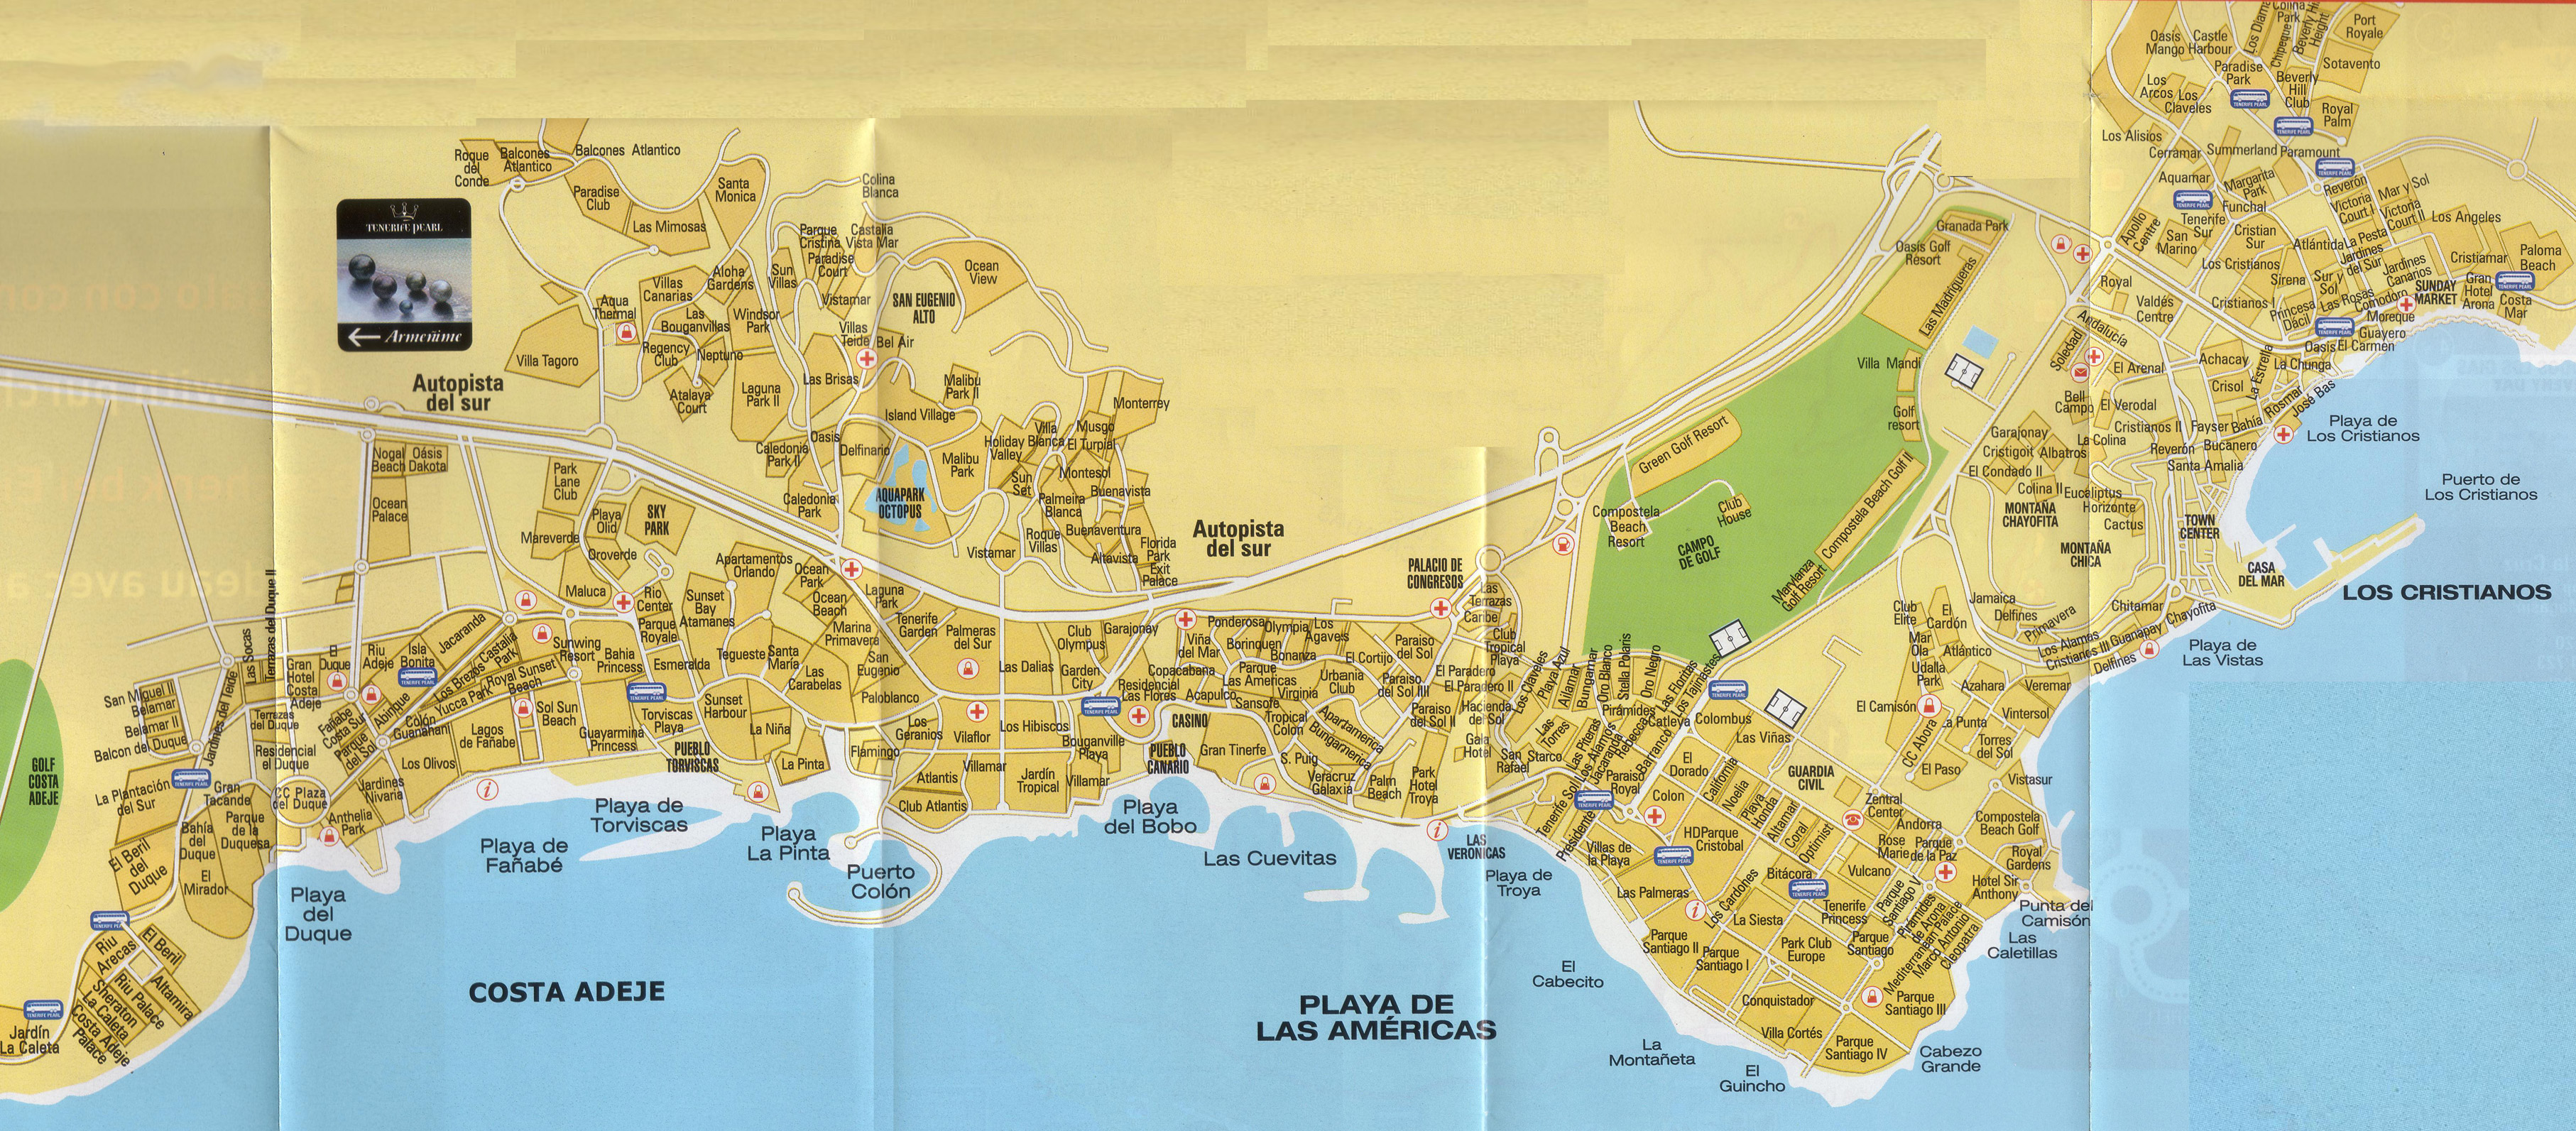 Costa Adeje Map Tenerife Map   Tenerife Island Maps   Map of Tenerife